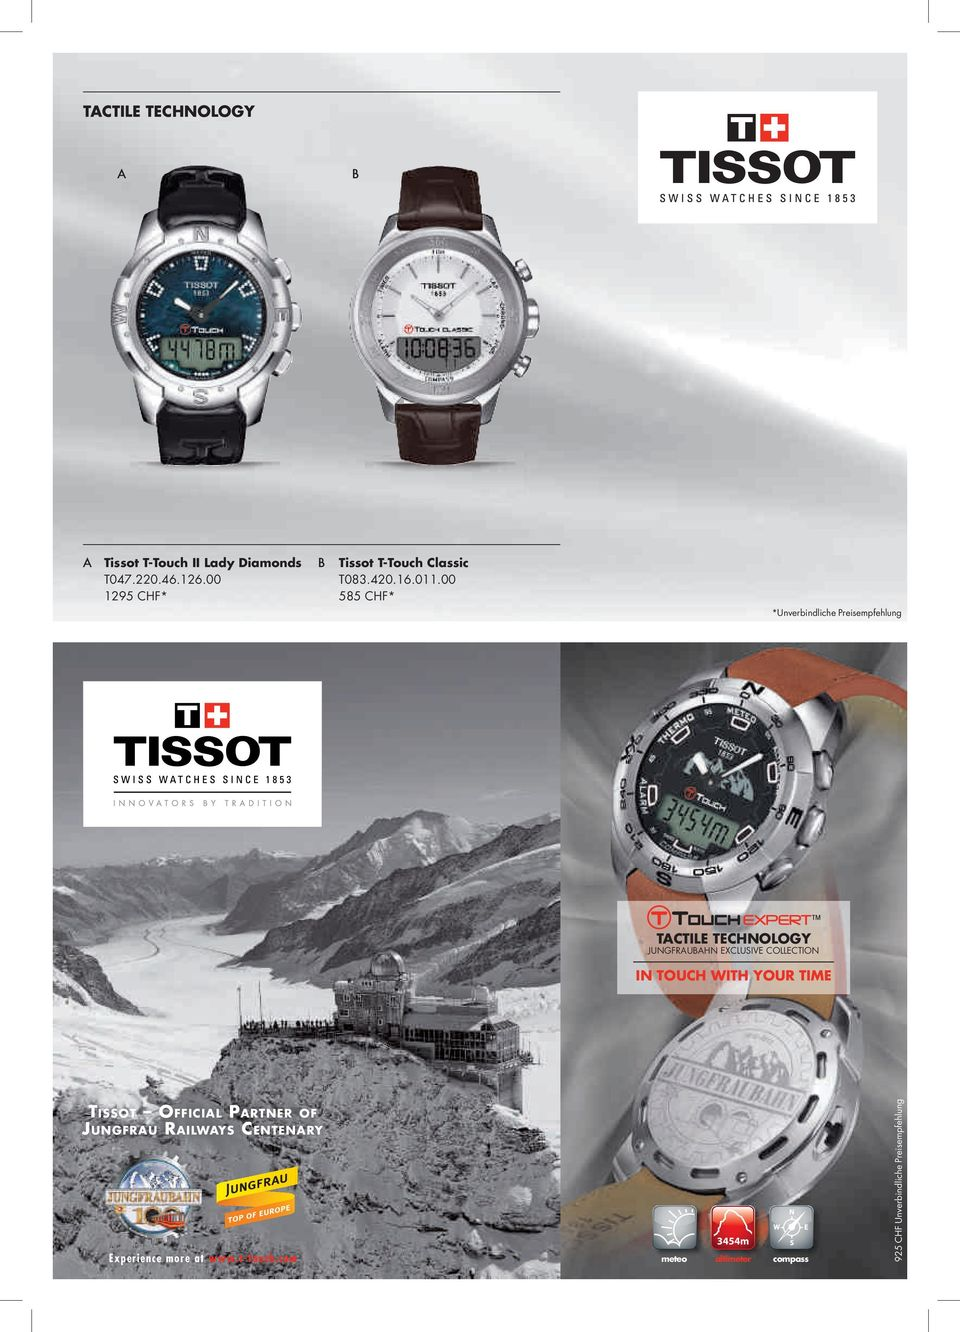 00 585 CHF* *Unverbindliche Preisempfehlung TACTILE TECHNOLOGY JUNGFRAUBAHN EXCLUSIVE COLLECTION IN